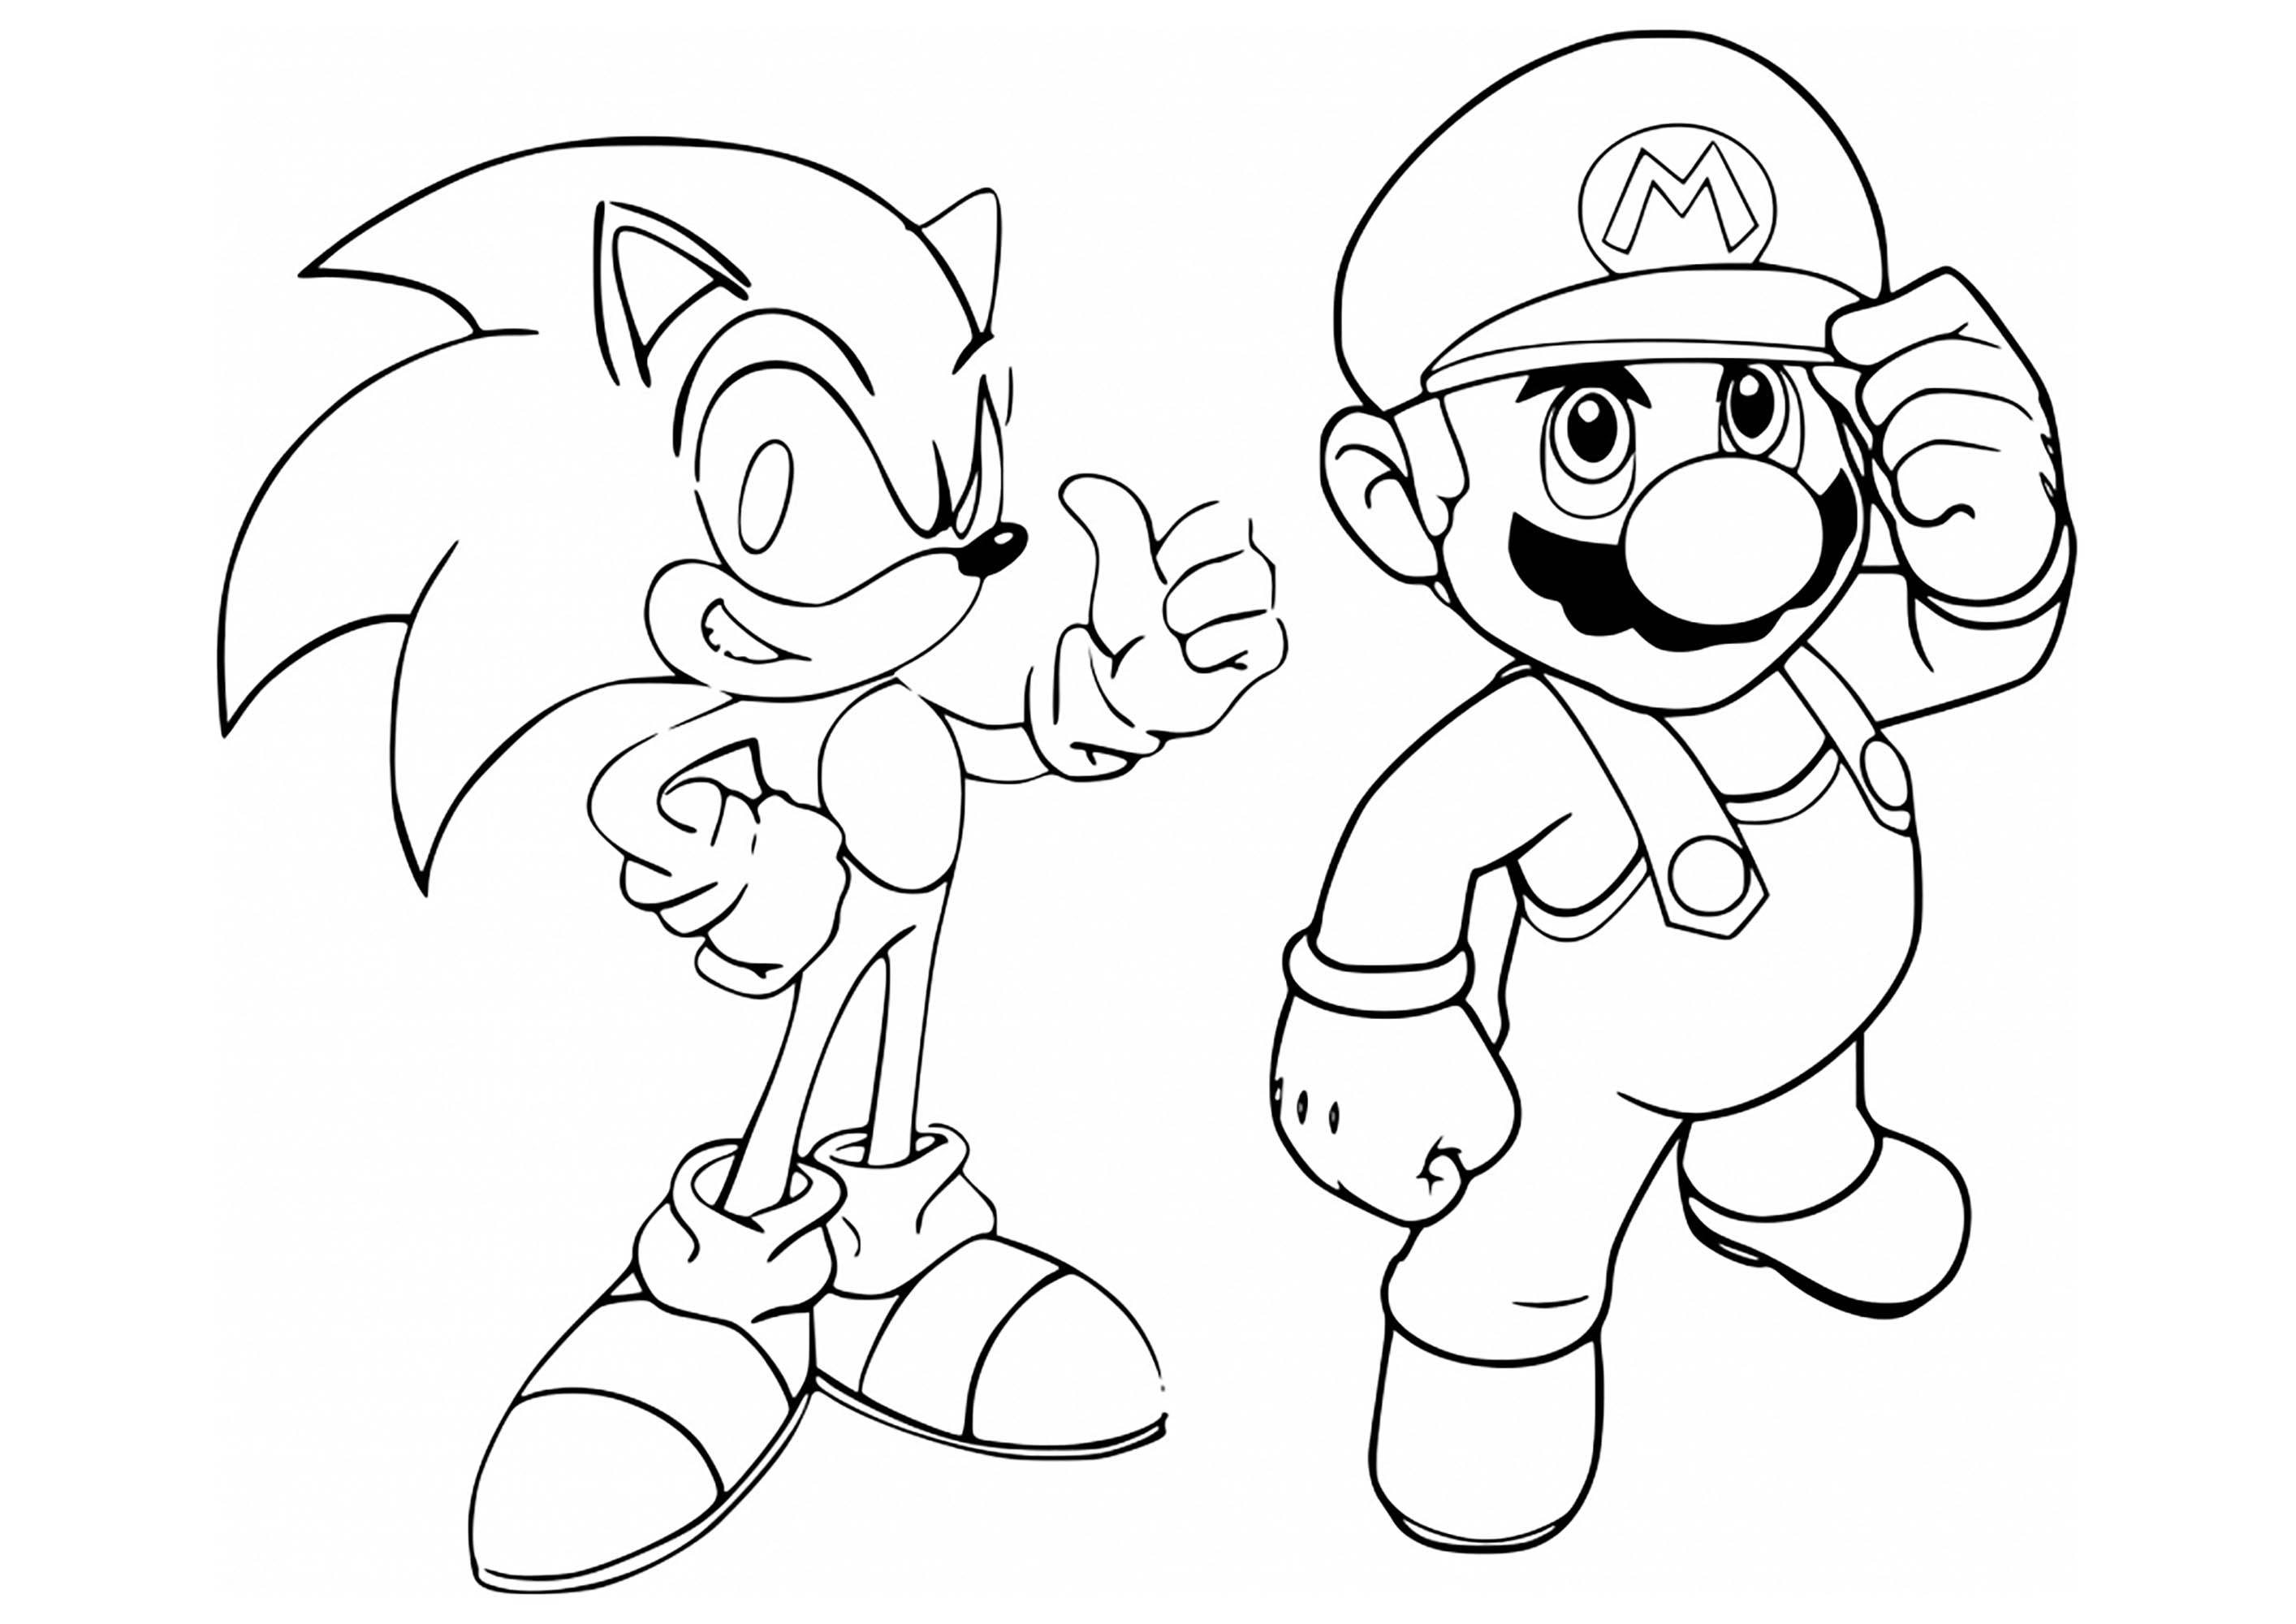 printable pictures of mario characters mario sonic coloring page mario bros kids coloring pages printable characters of pictures mario